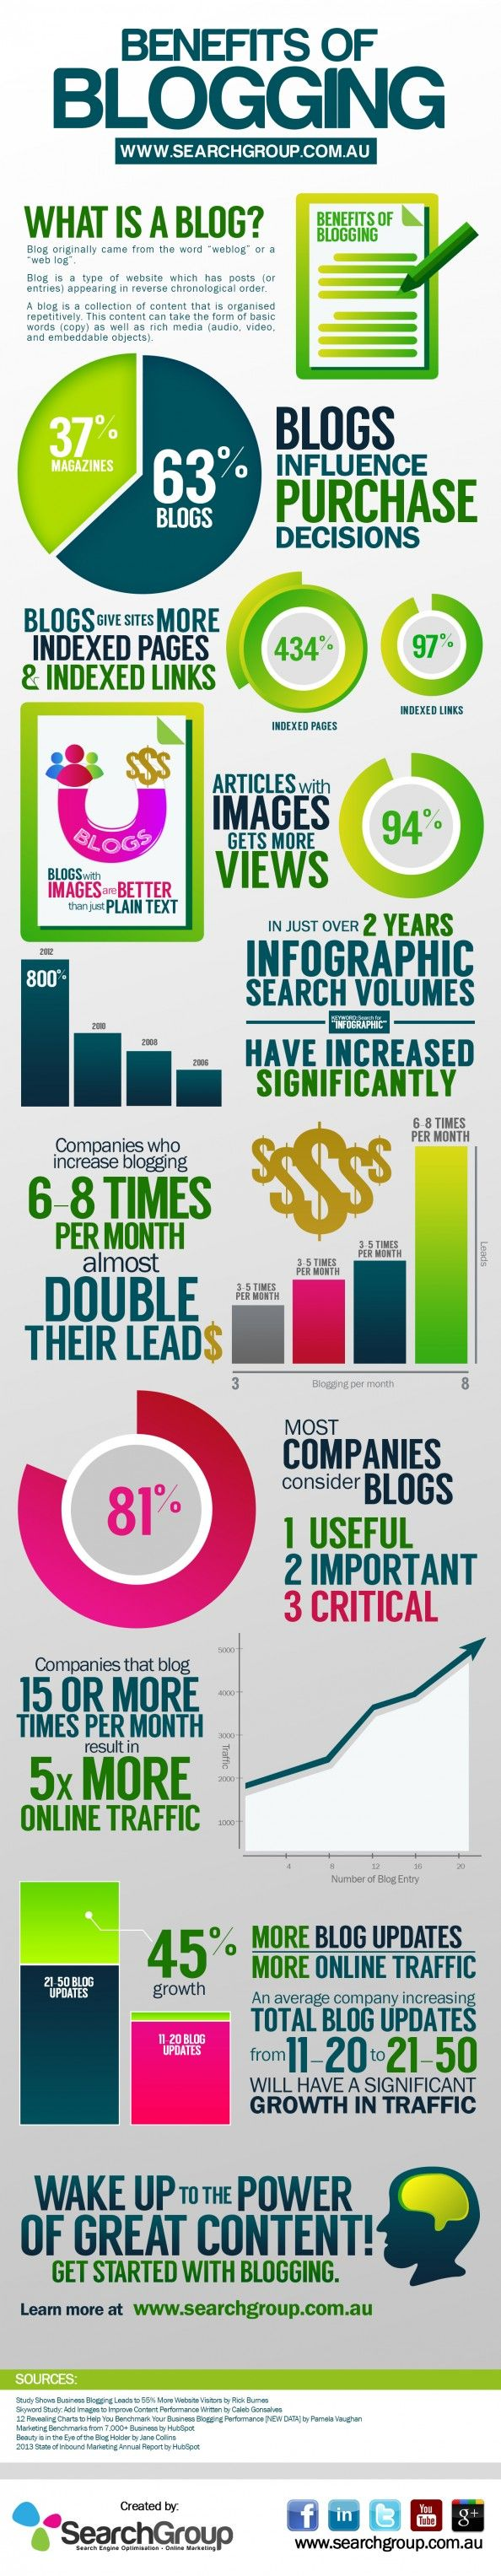 Benefits of Blogging #Infographic - @Mary Lumley | BornToBeSocial